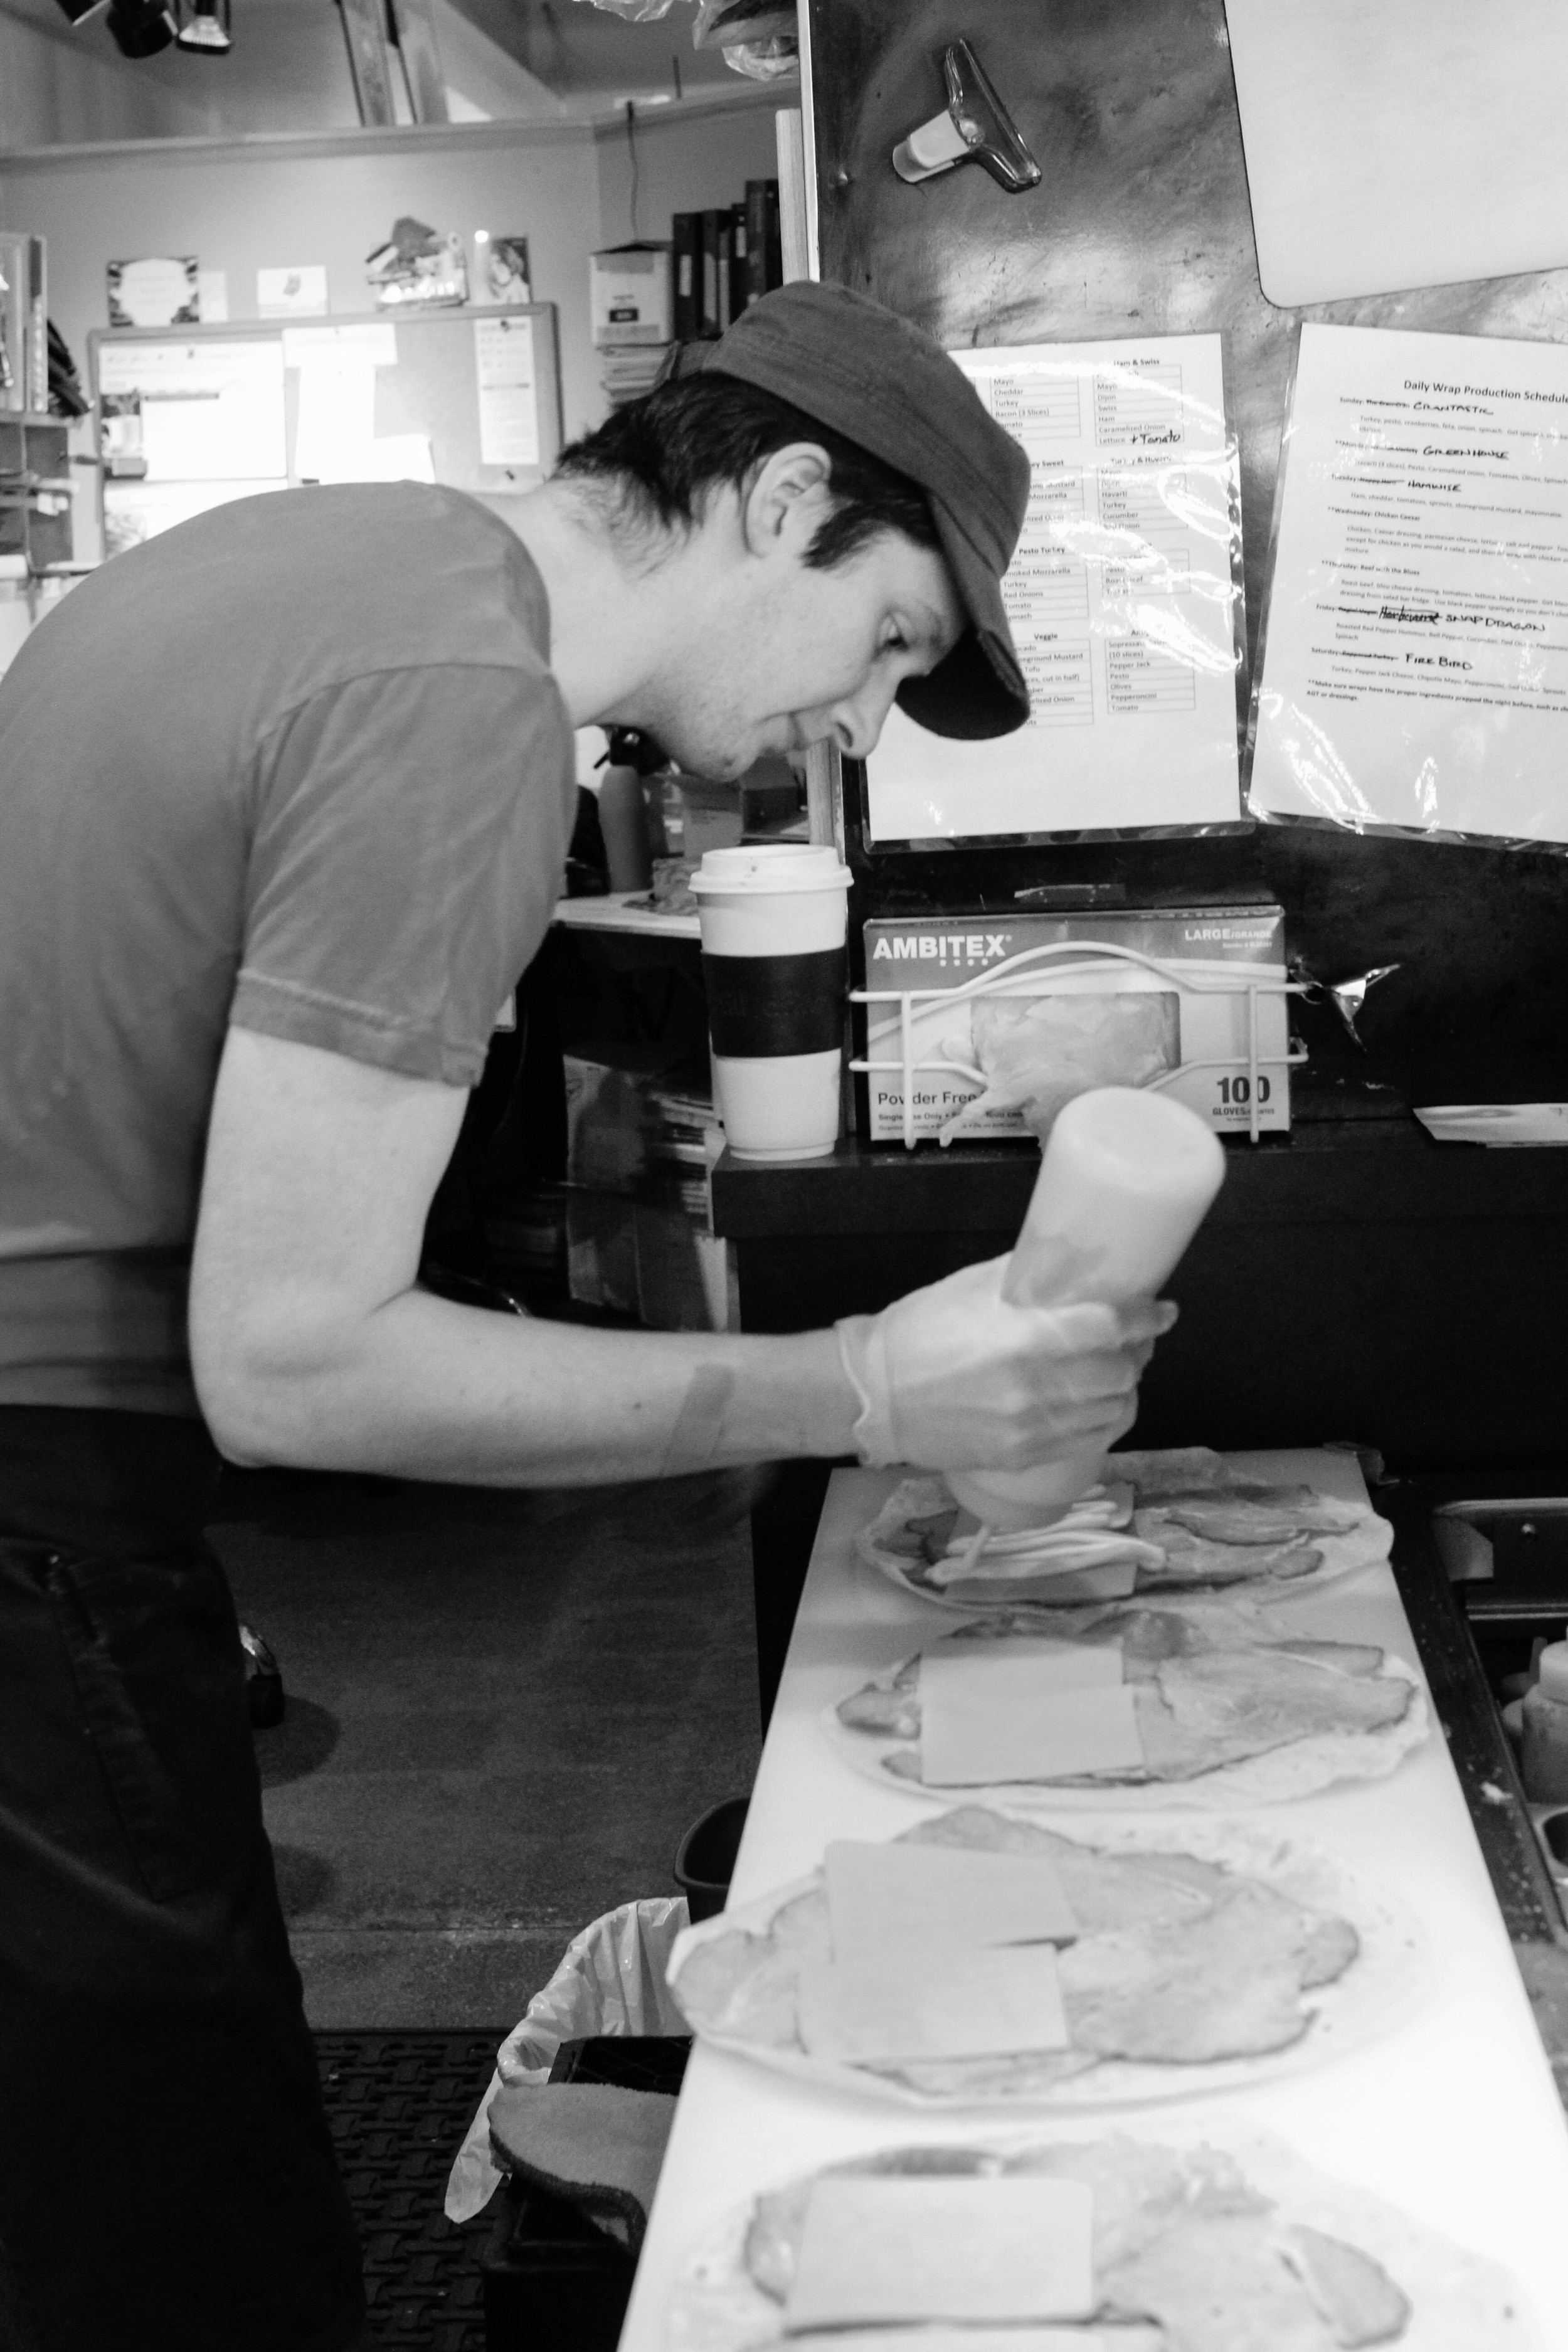 Joe, making some of the most delicious wraps around.